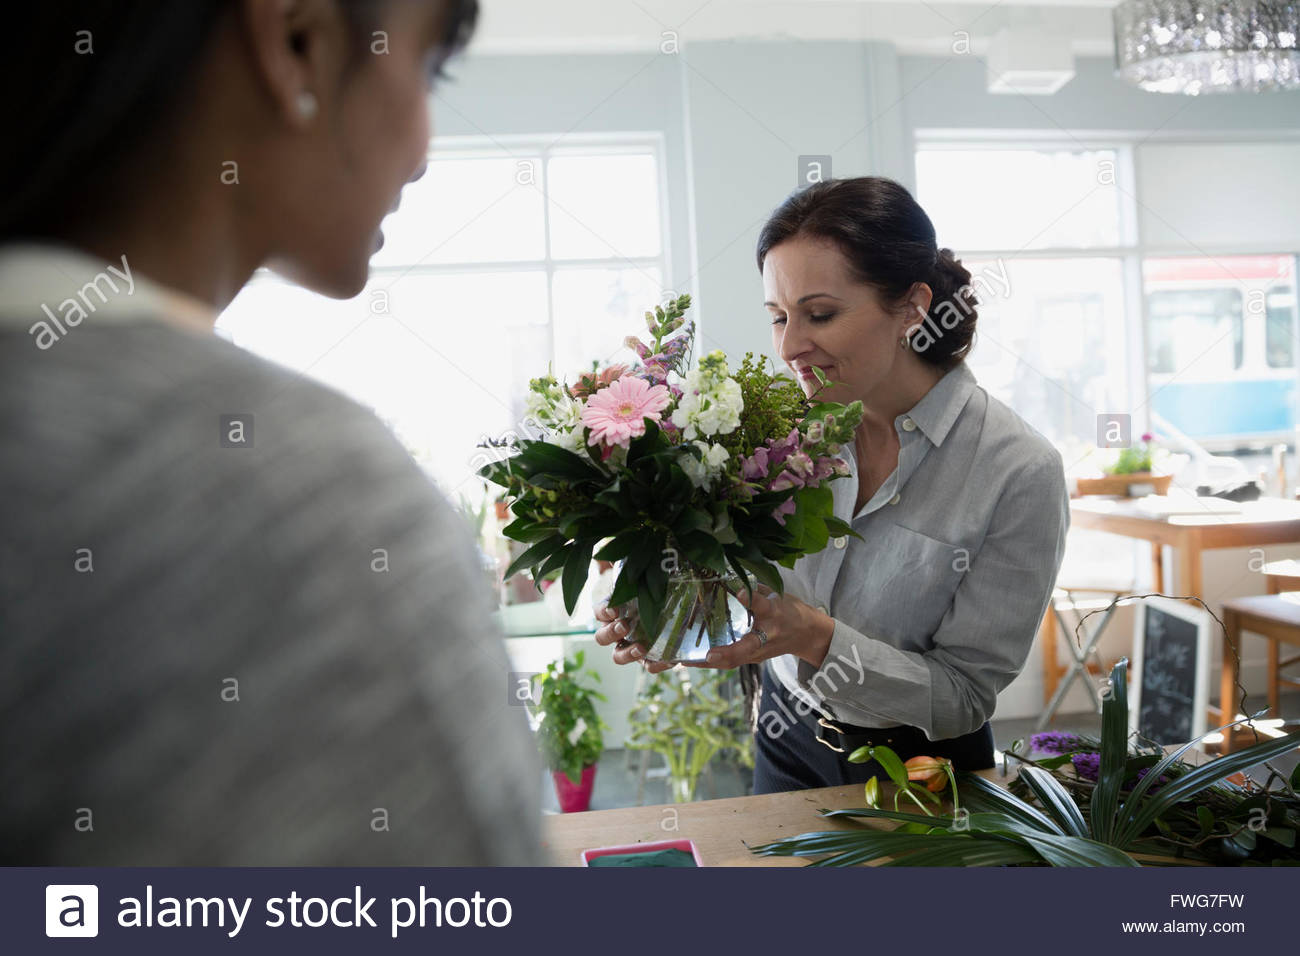 Customer smelling bouquet in flower shop - Stock Image